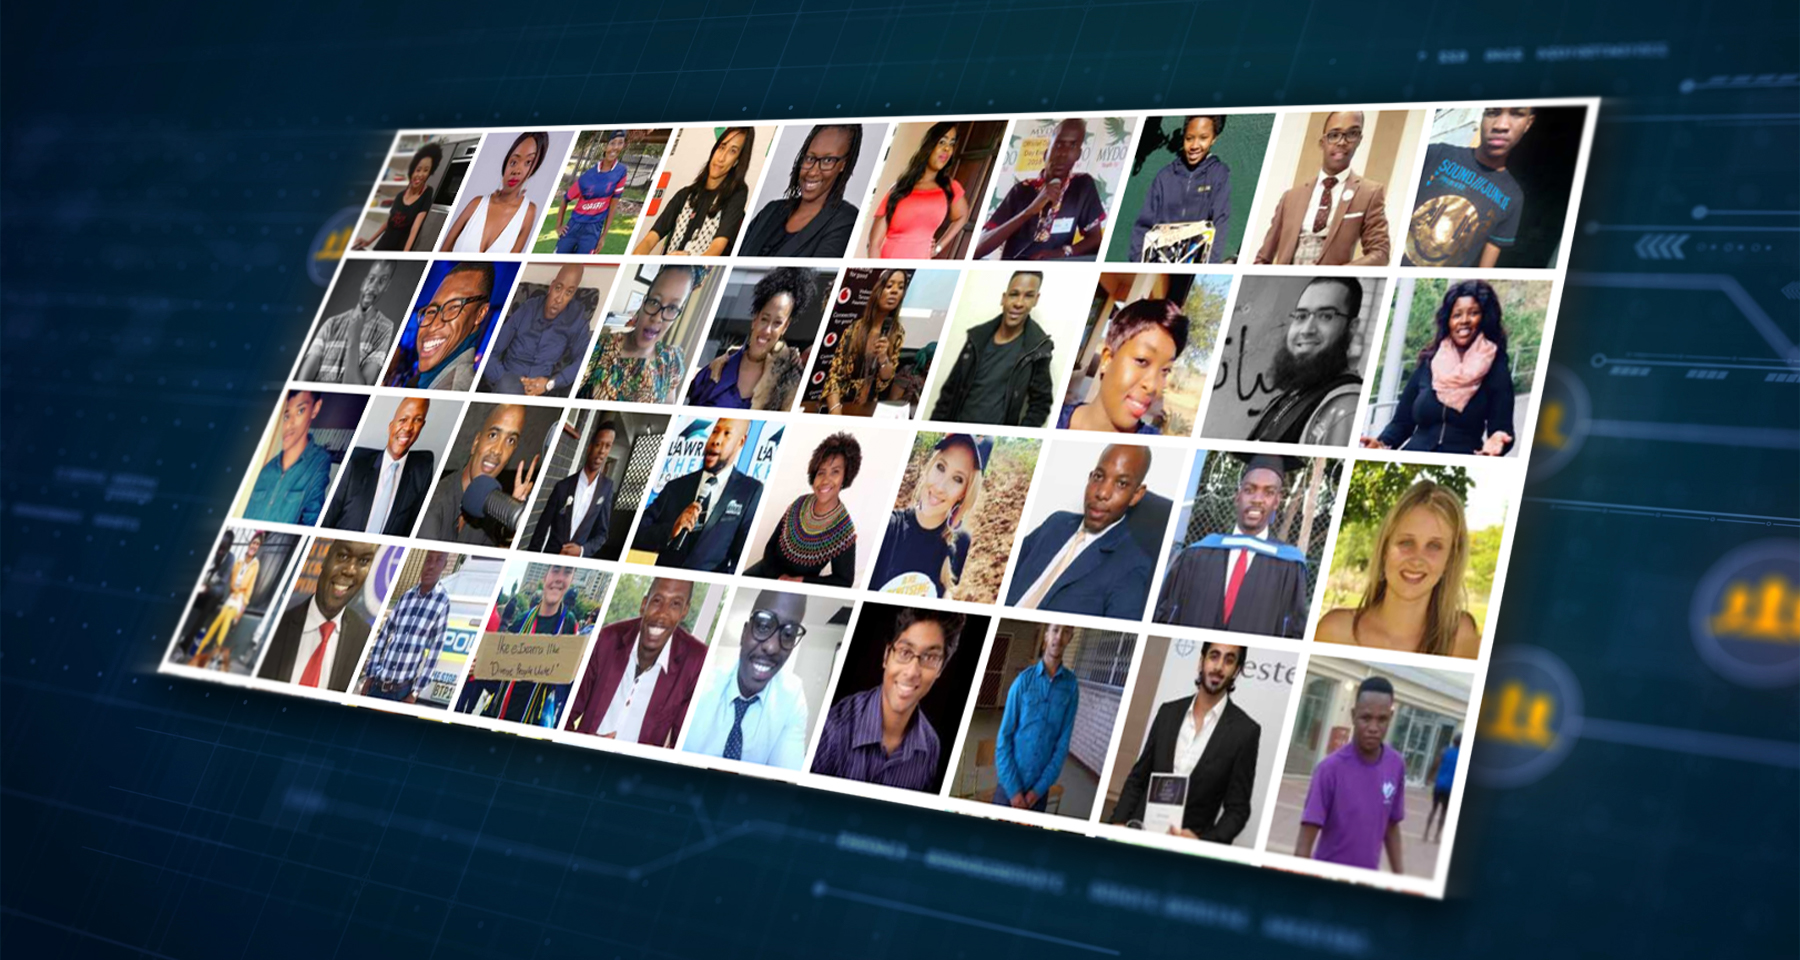 News24 engages young readers with multi-media campaign honouring Mandela